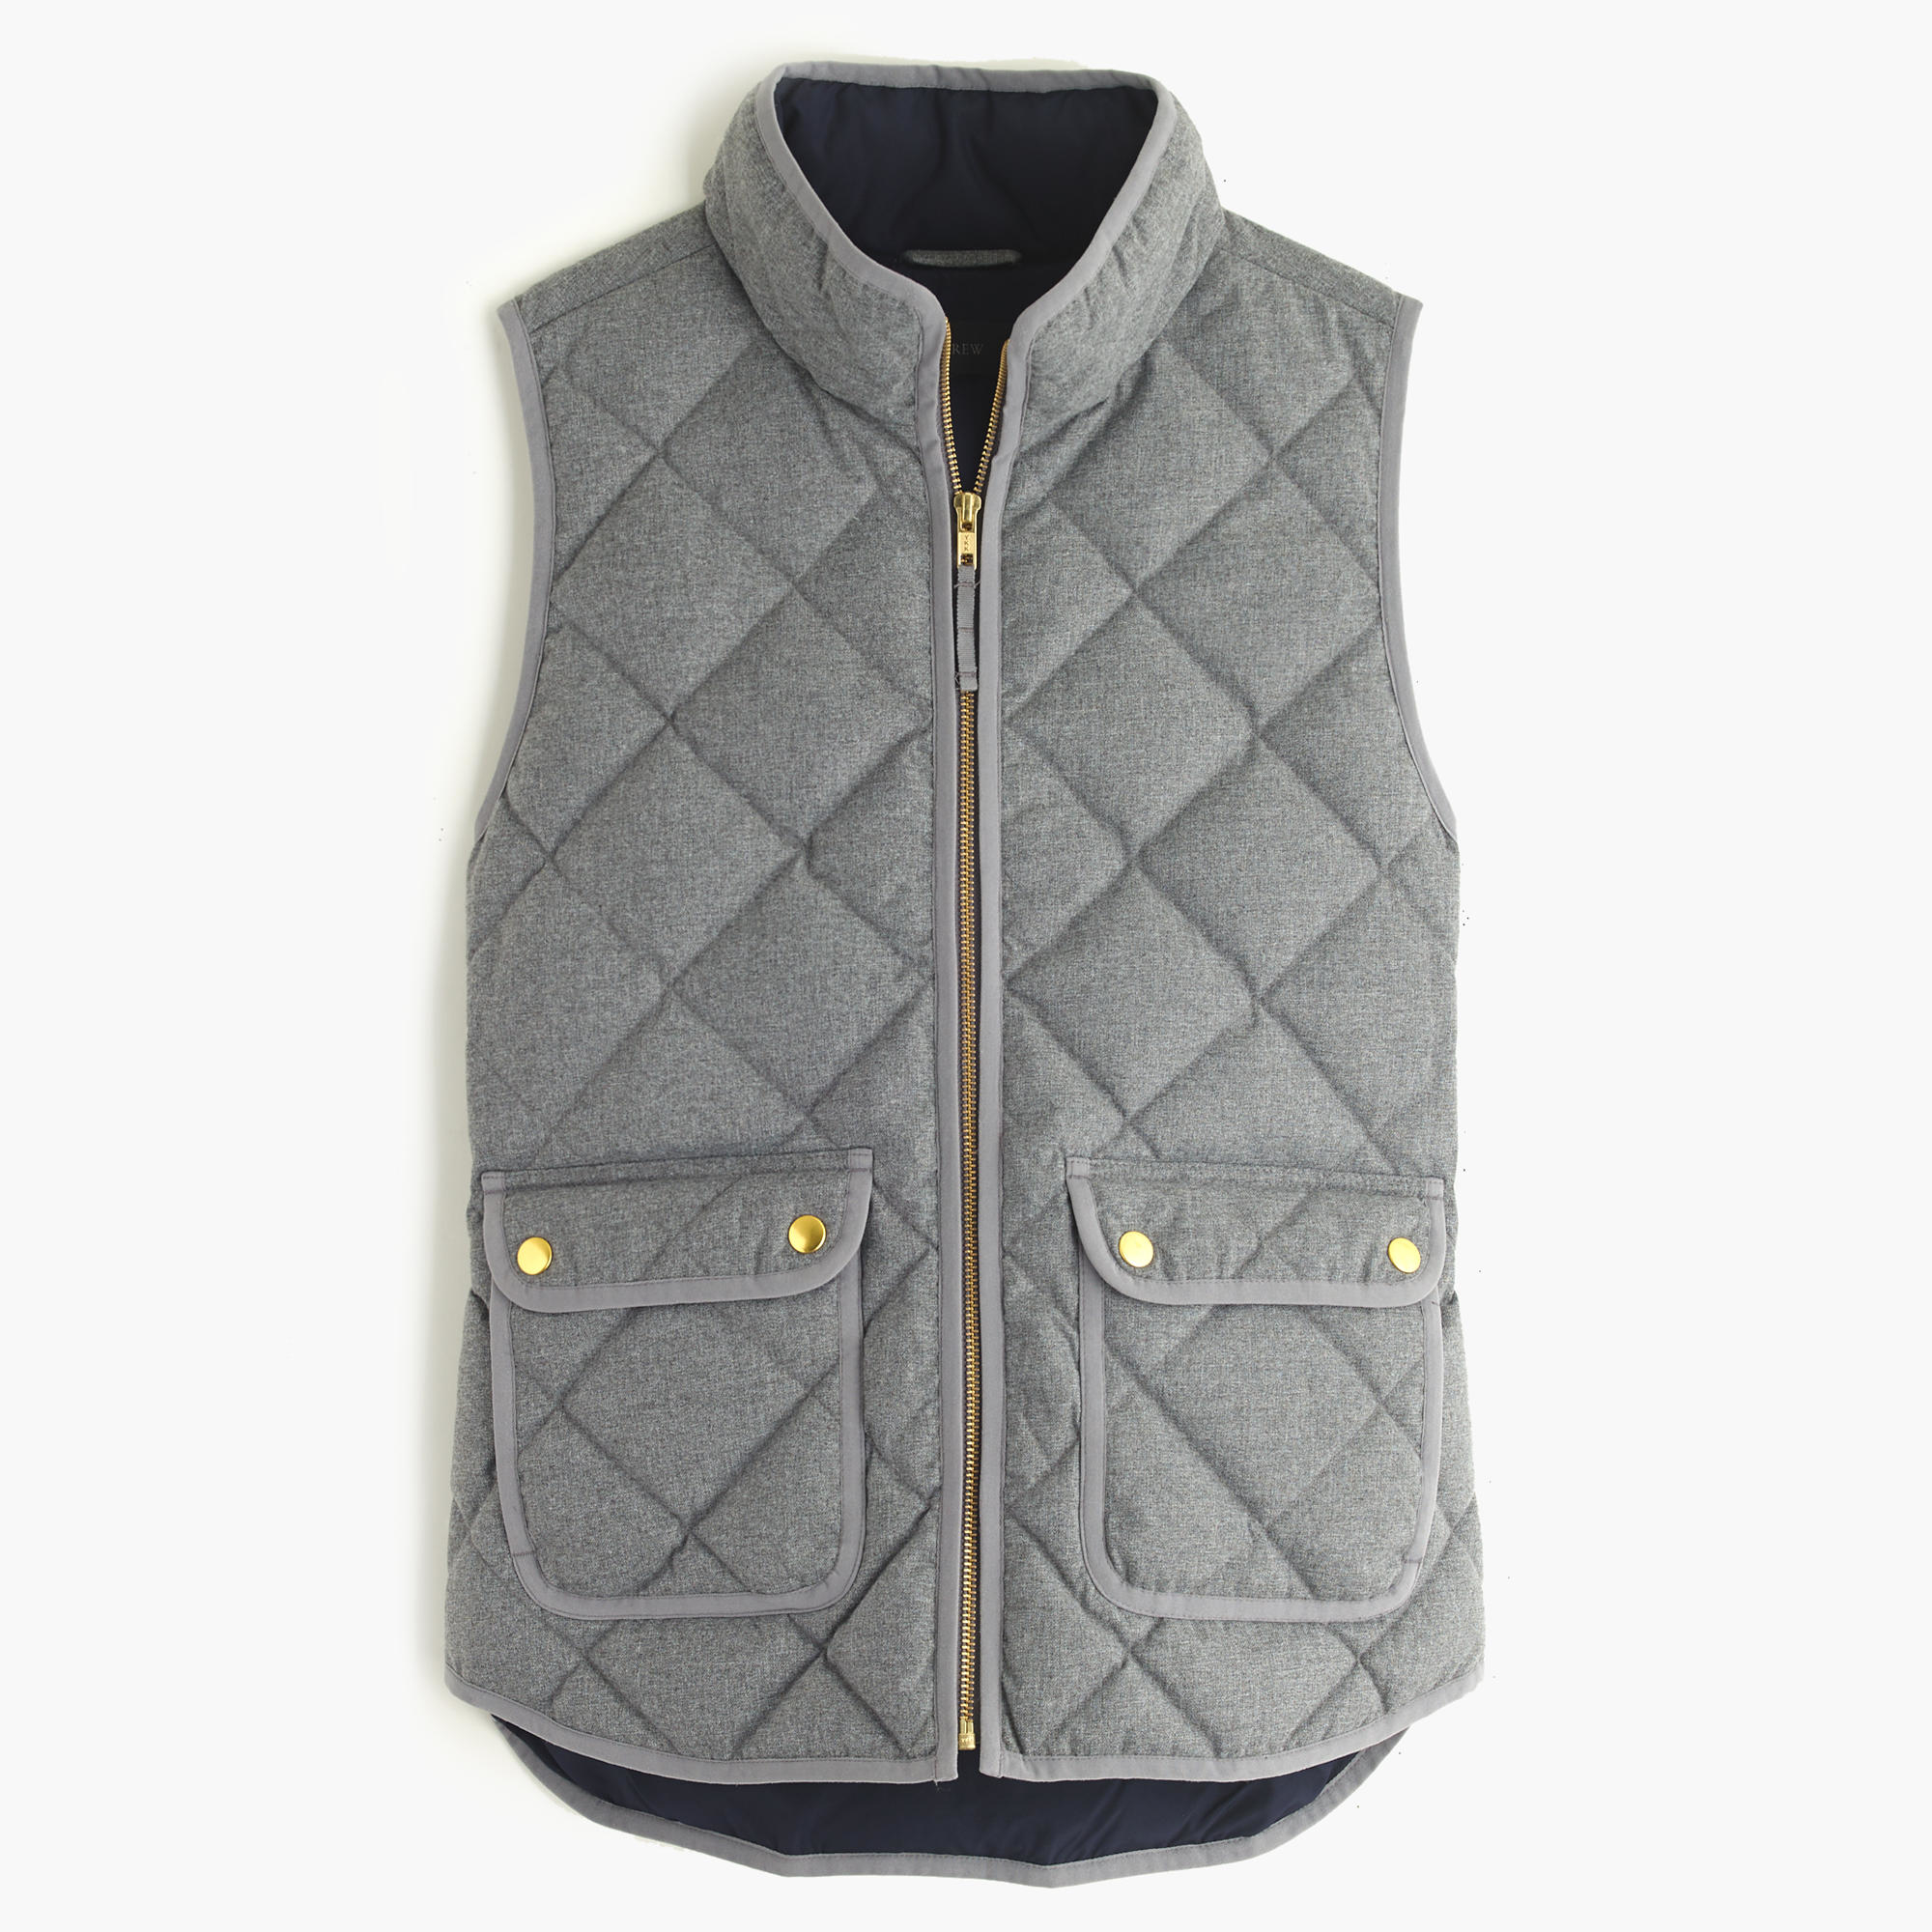 J Crew Petite Excursion Quilted Vest In Flannel In Gray